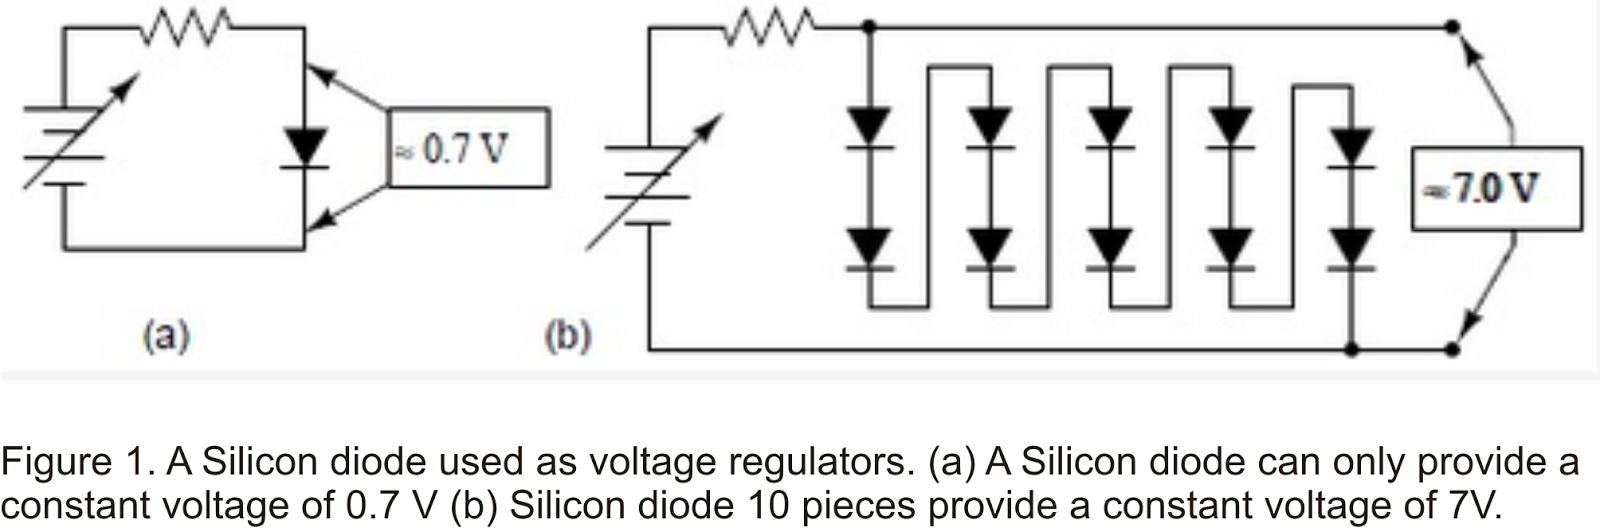 Zener Diodes Vian Lintin Circuit Diagram Diode Voltage Regulator On The Of Figure 1a Functions As A For Drop Is Likely To Be Constant Equal 07 V Power Supply